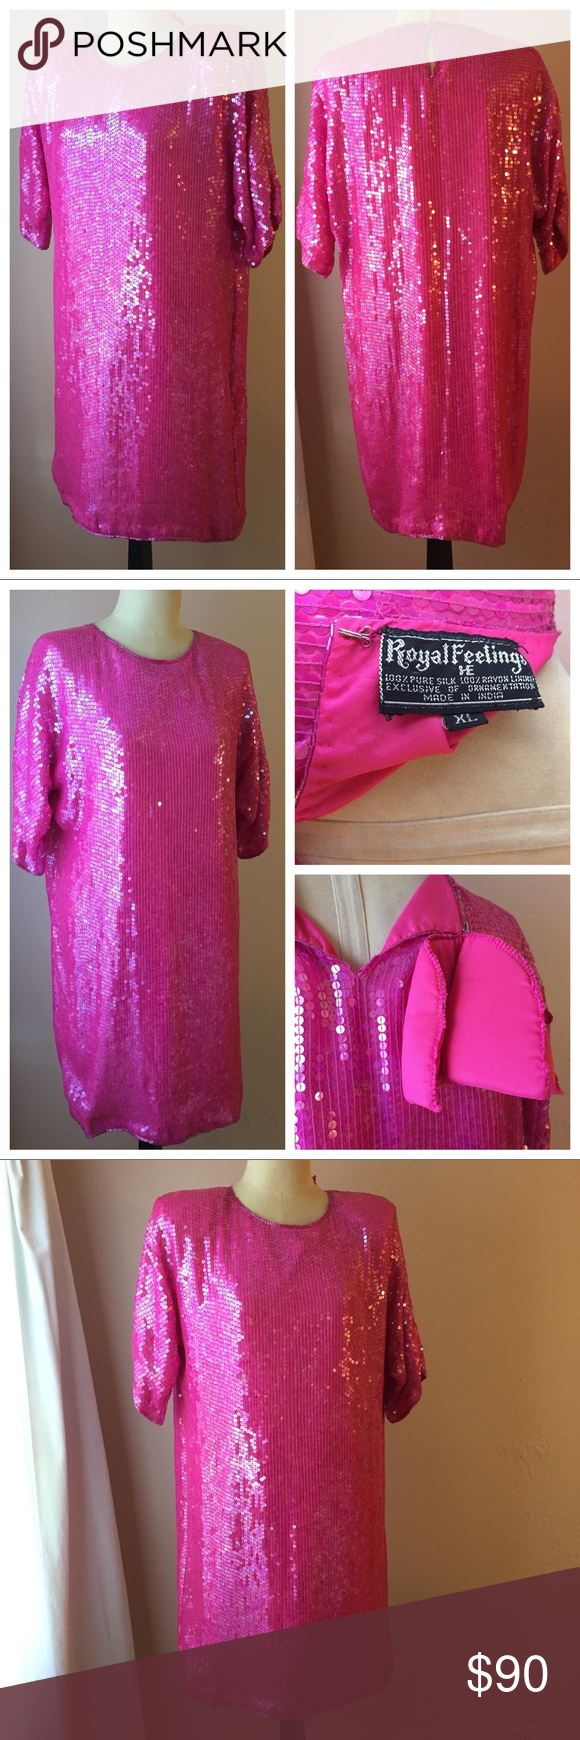 Royal feelings silk s pink sequin mini dress xl shoulder to